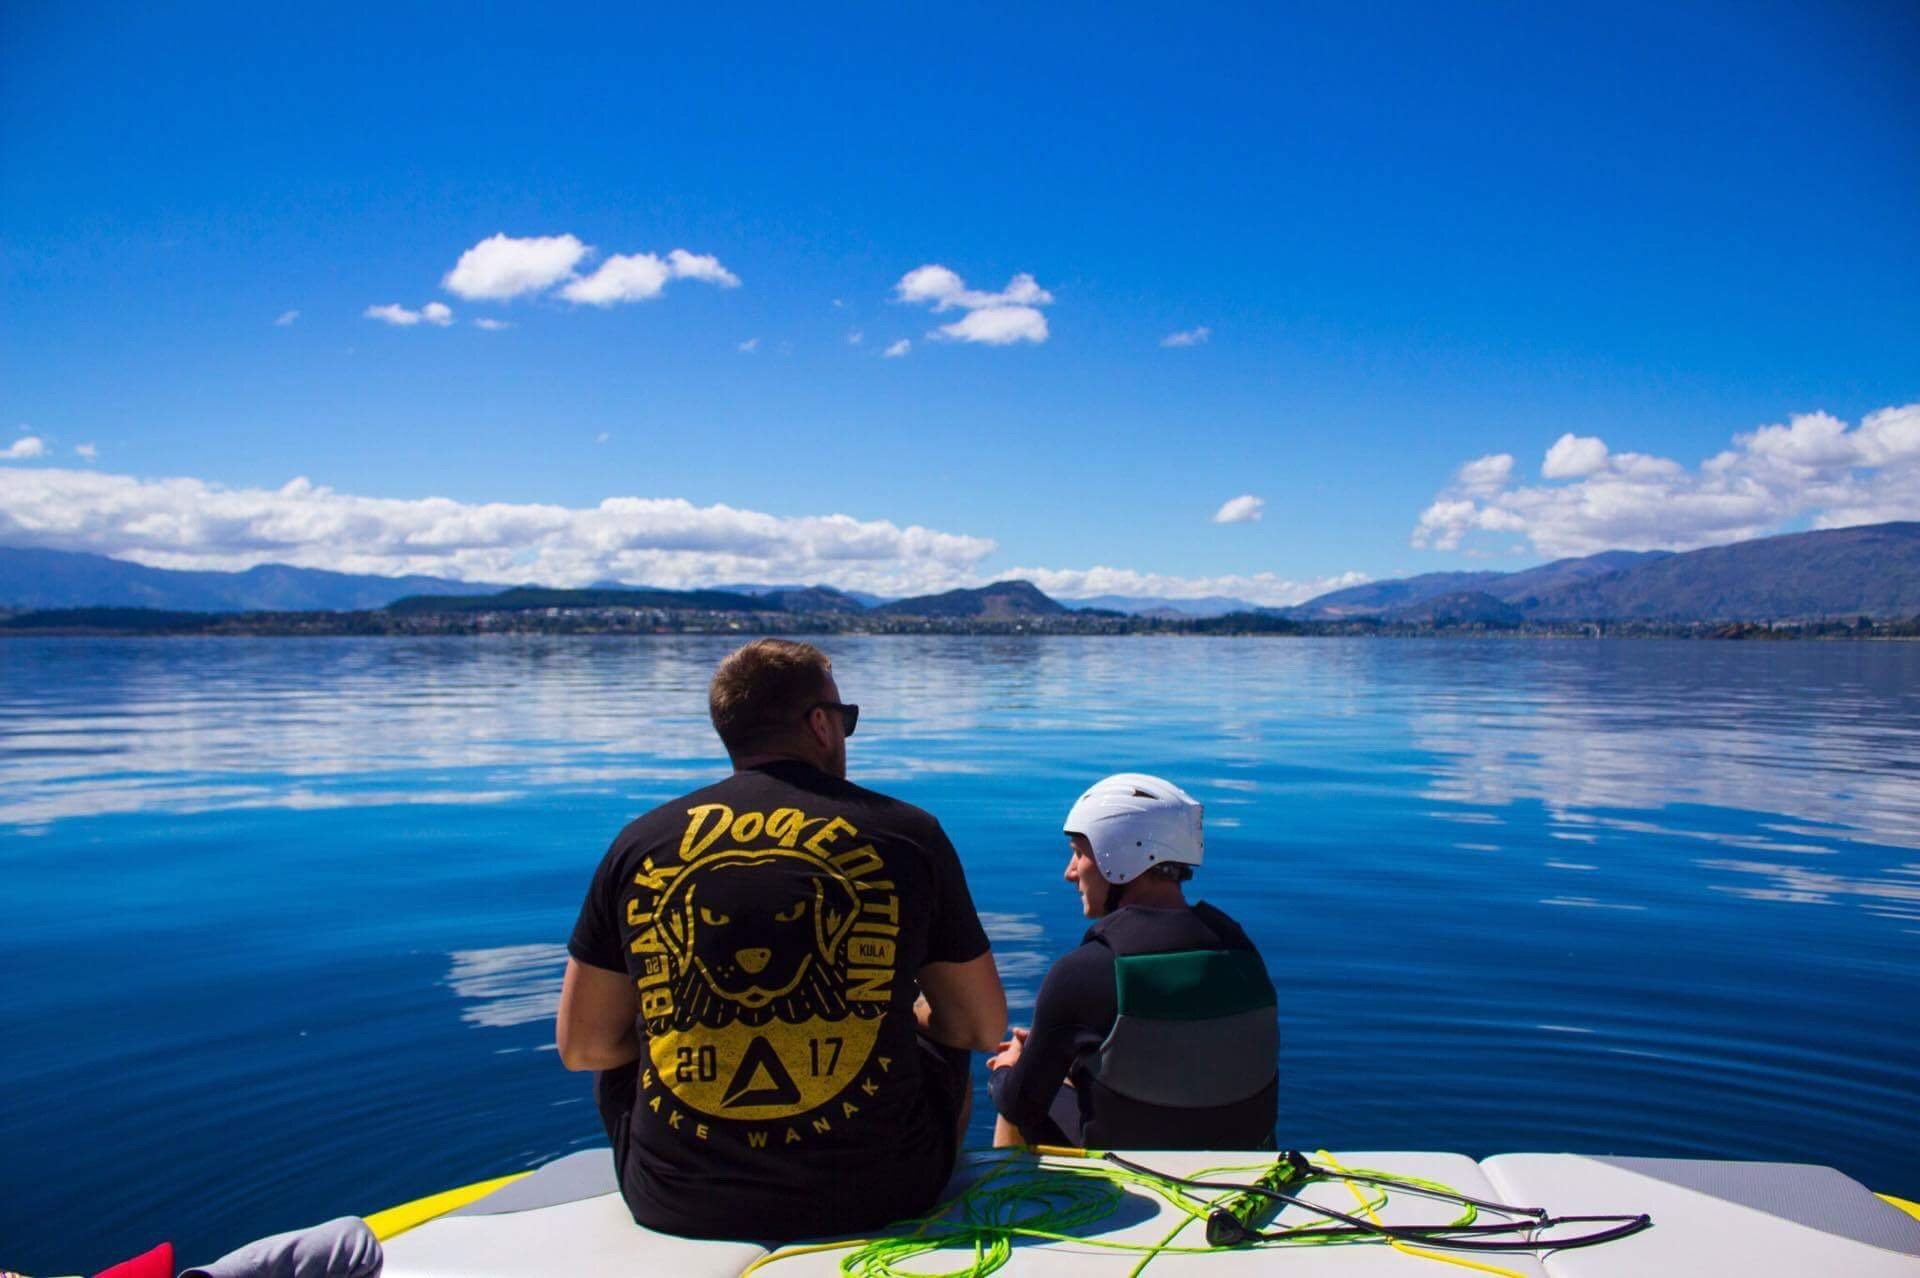 Quality wakeboard coaching for all levels